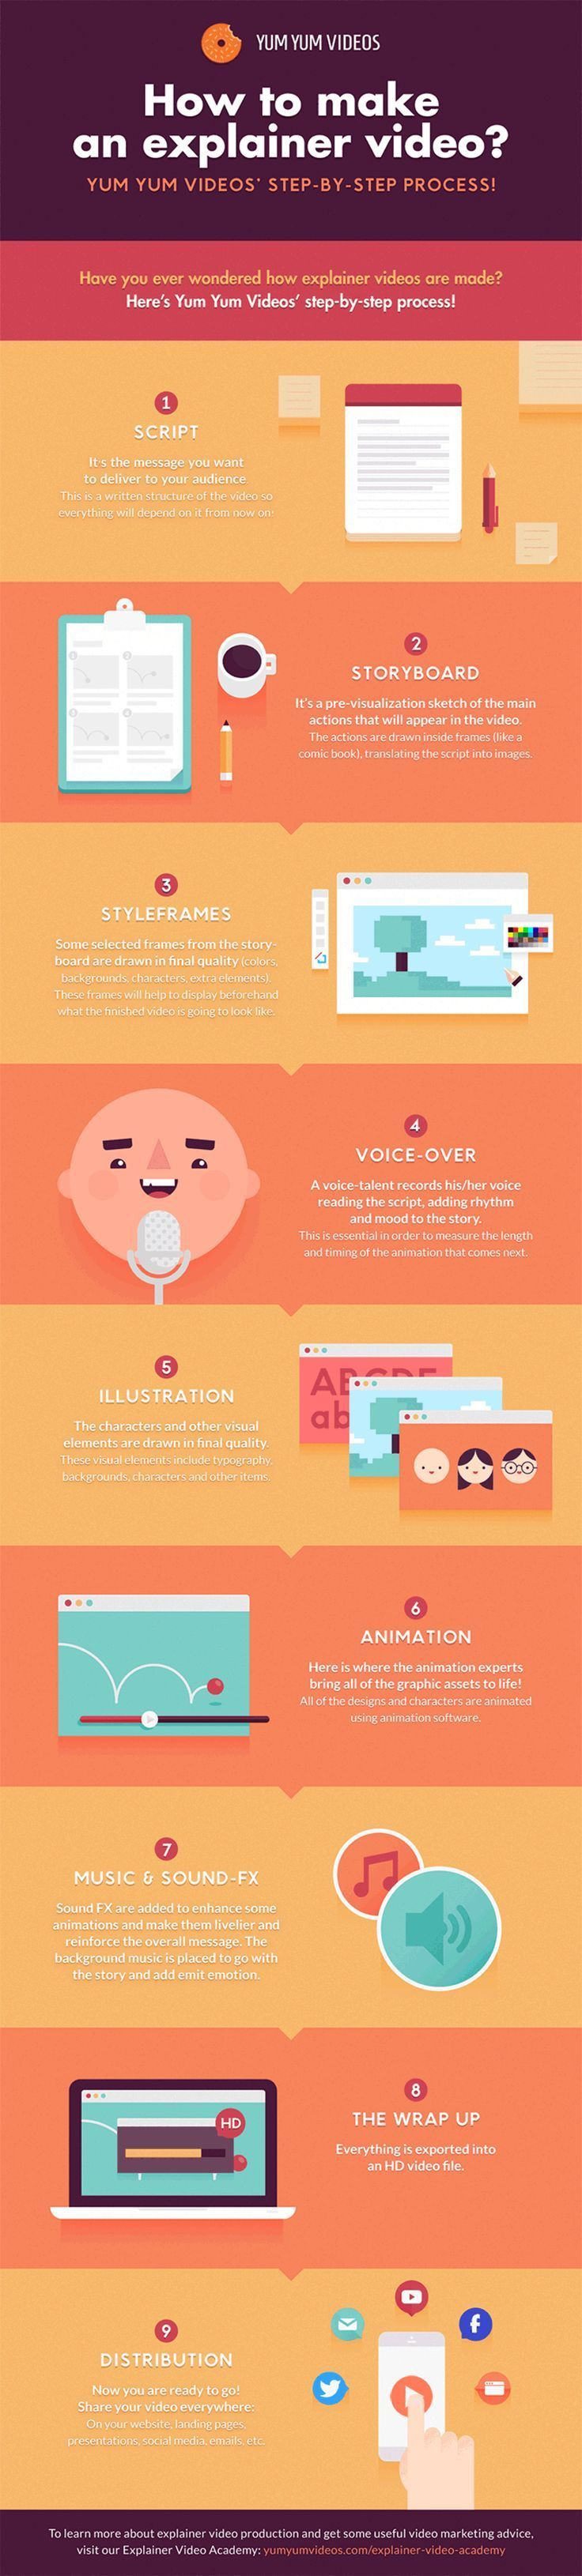 25+ best ideas about Process infographic on Pinterest ...